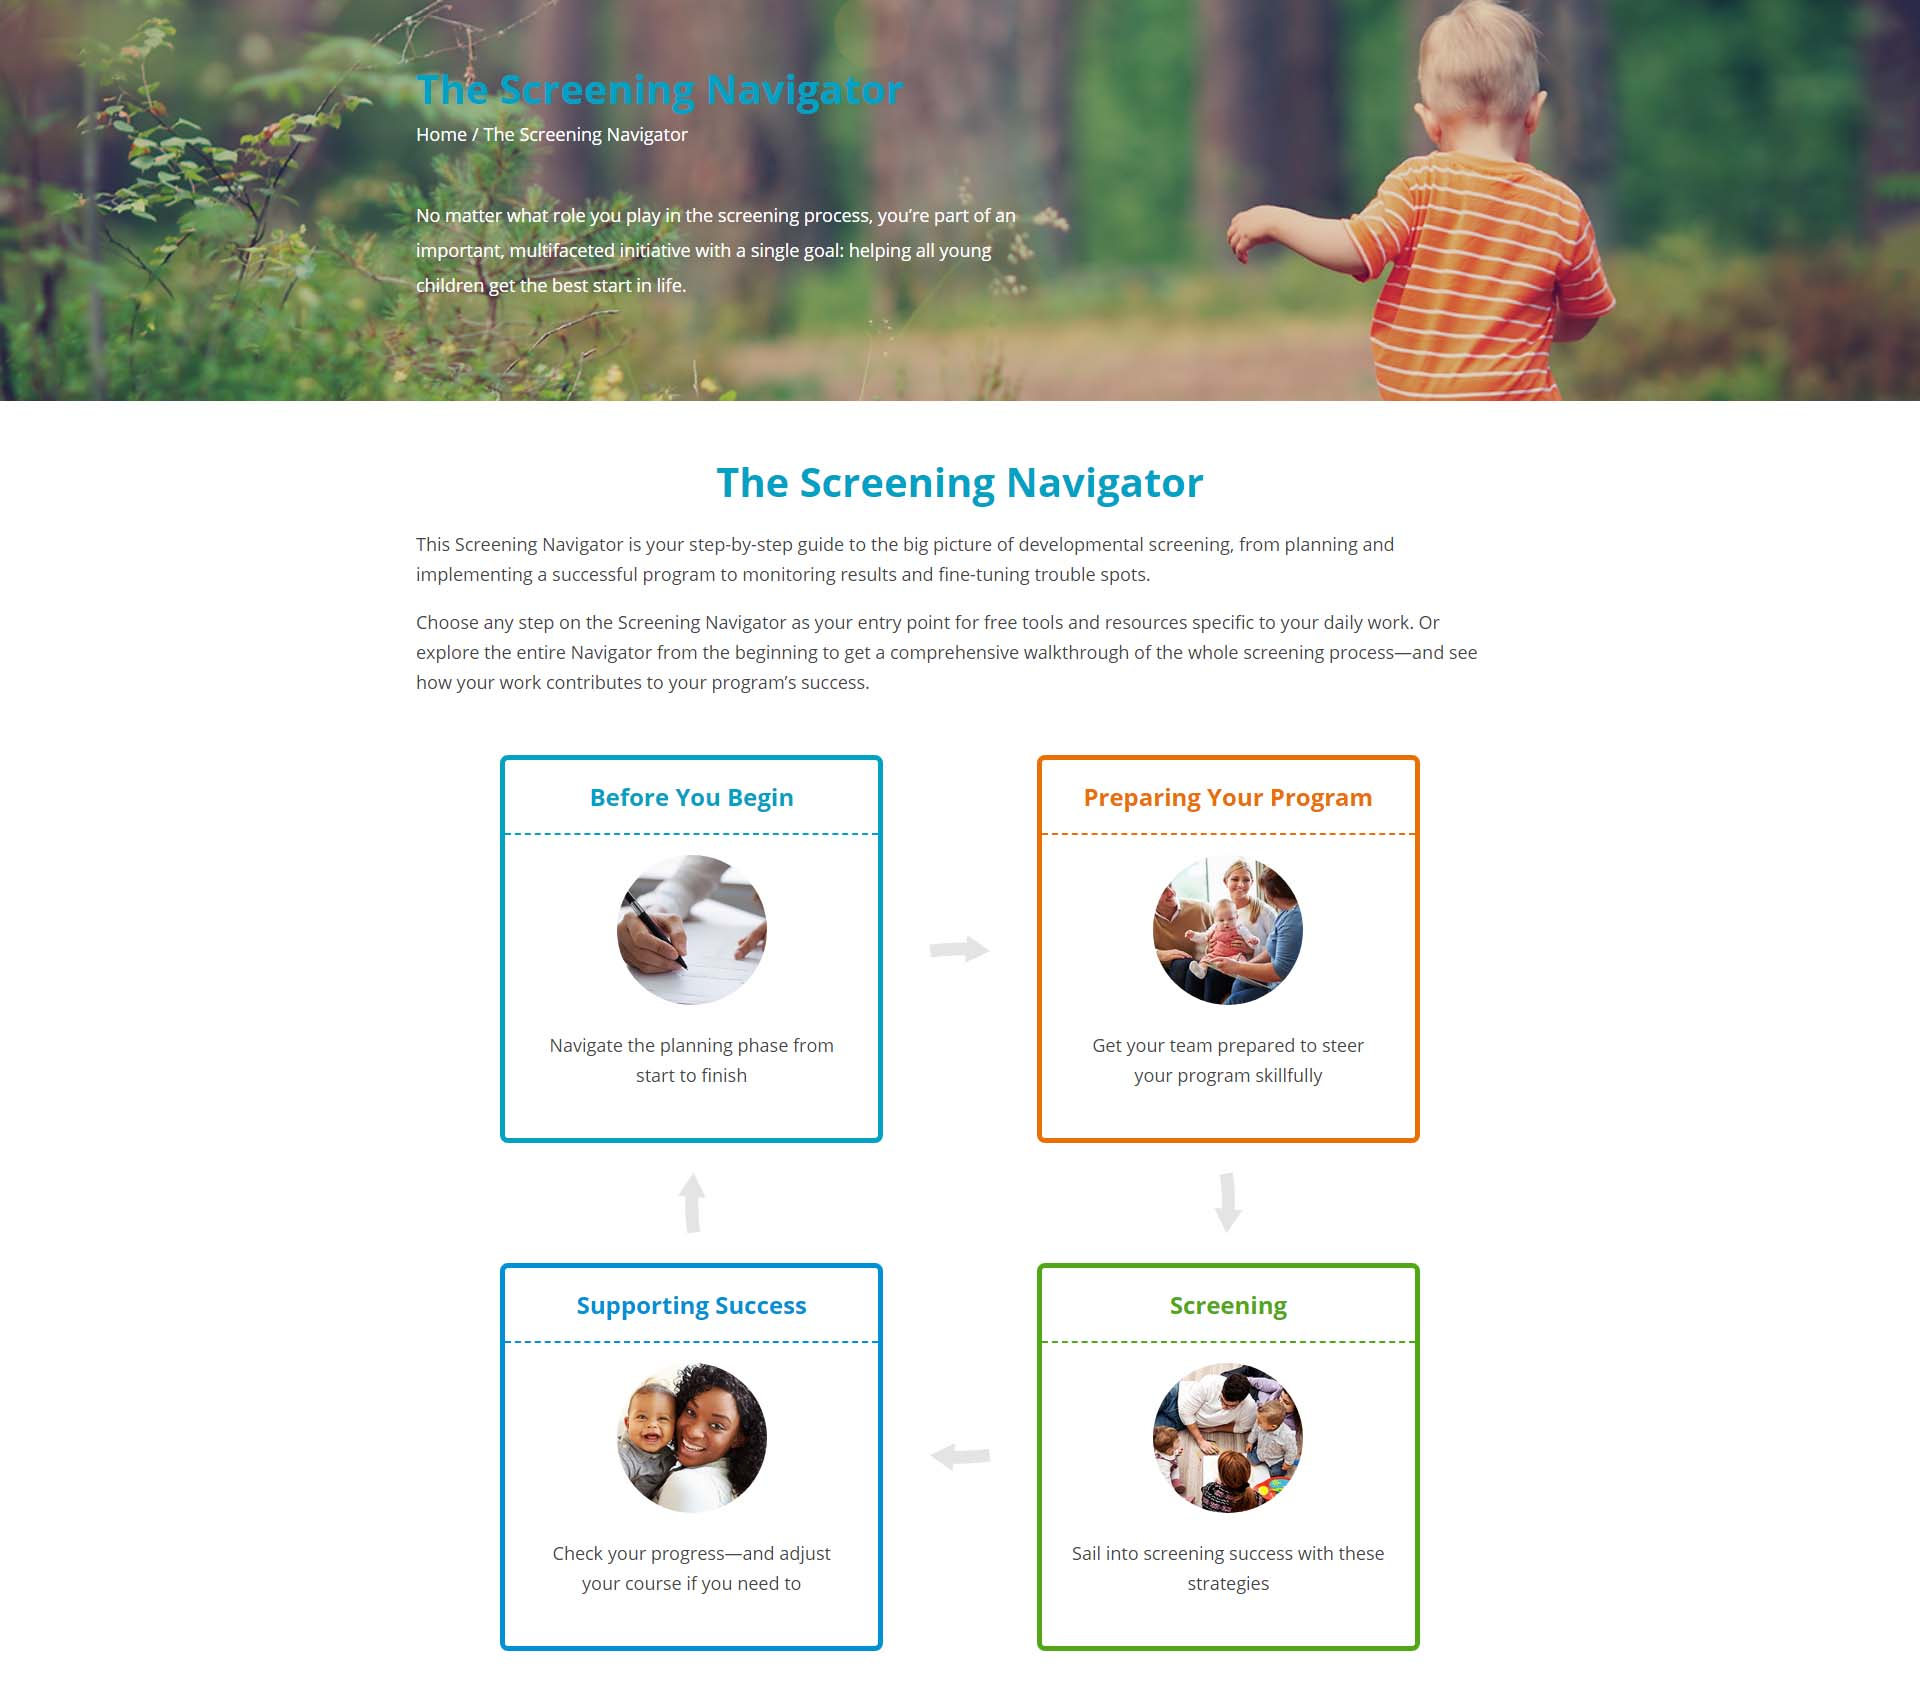 Tour the new ASQ website features - Ages and Stages